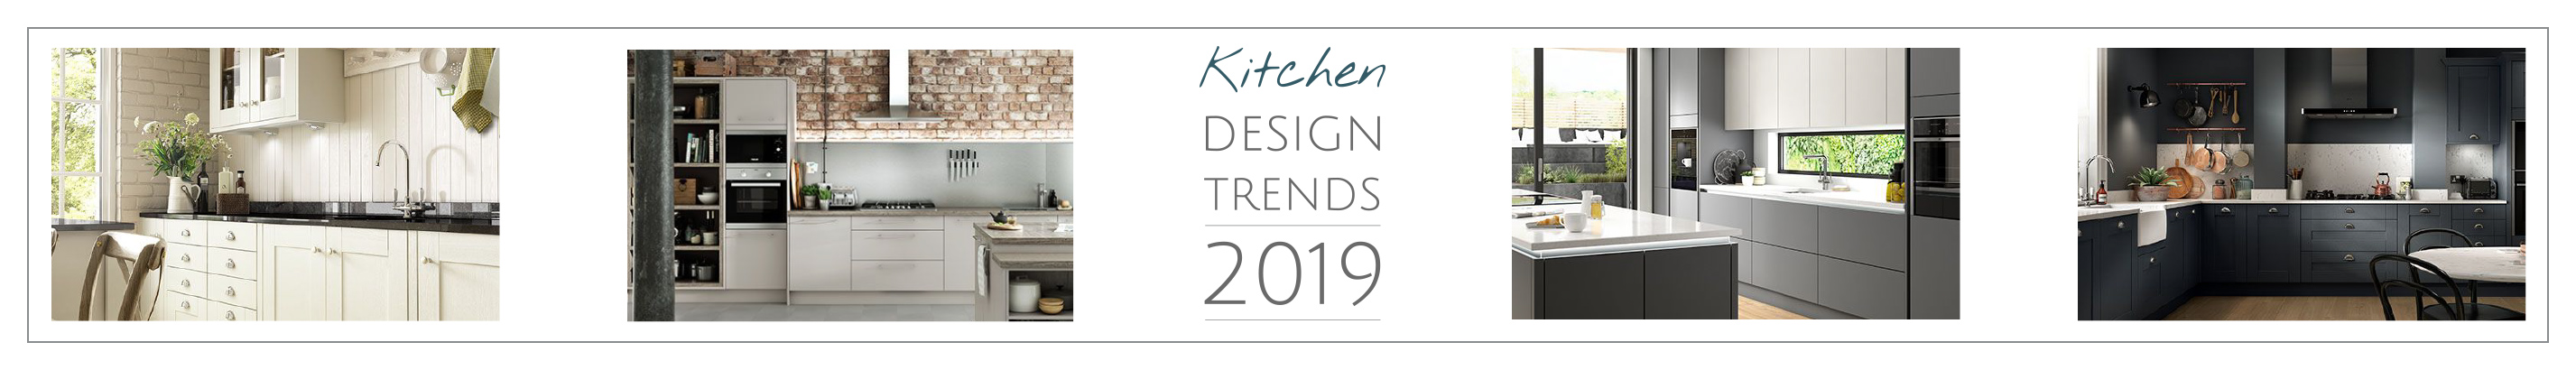 2019 Kitchen Design Trends